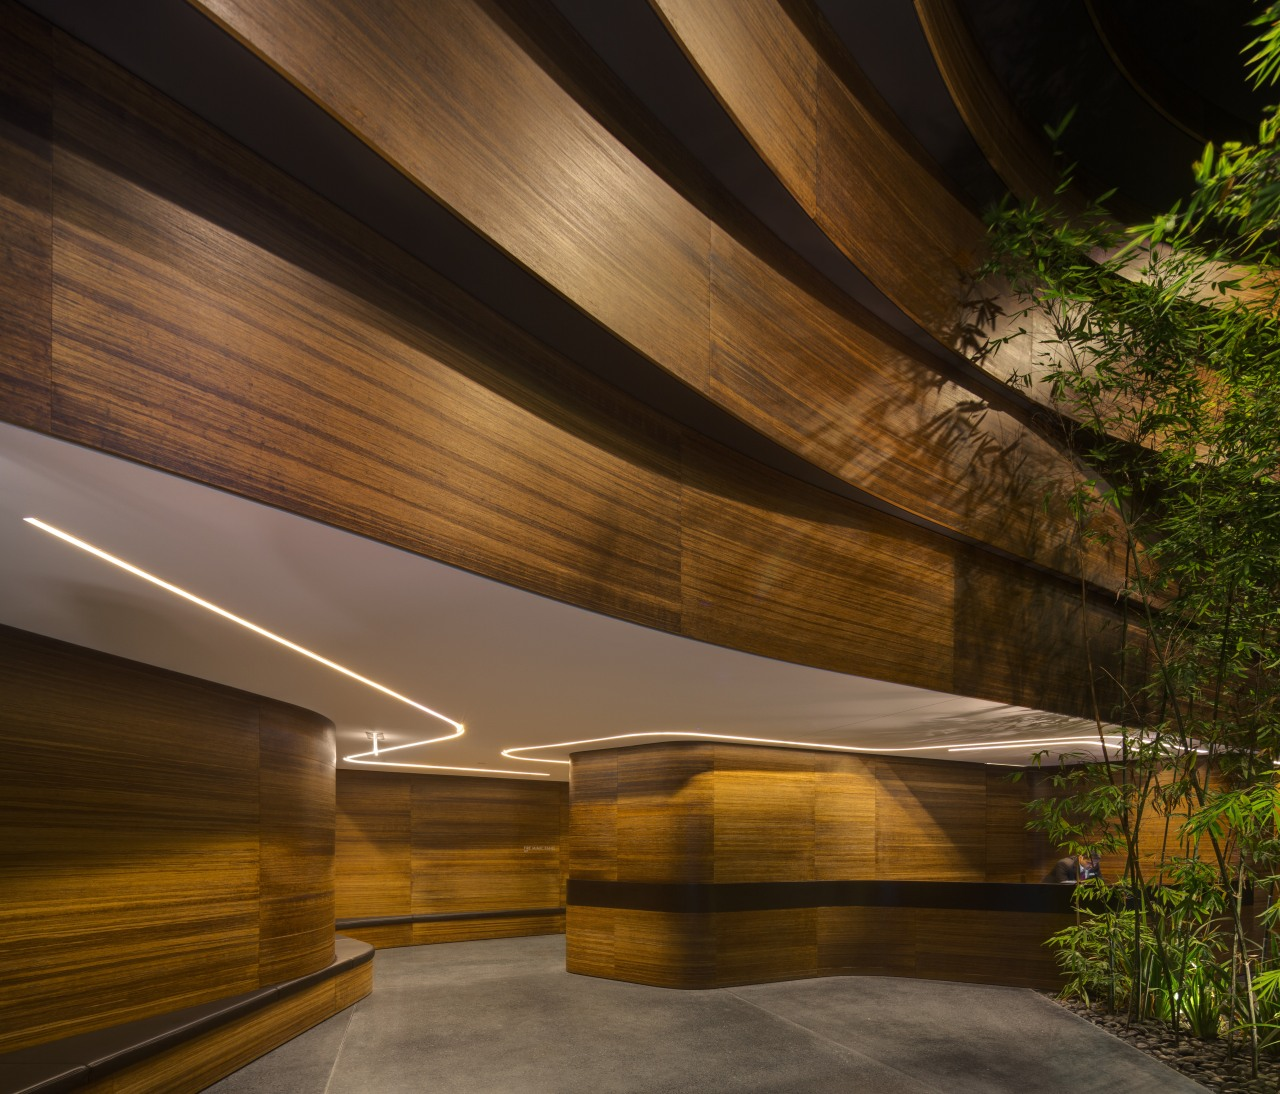 Lobby for East Tower, One Central Park, Sydney architecture, daylighting, interior design, light, lighting, reflection, sunlight, wood, brown